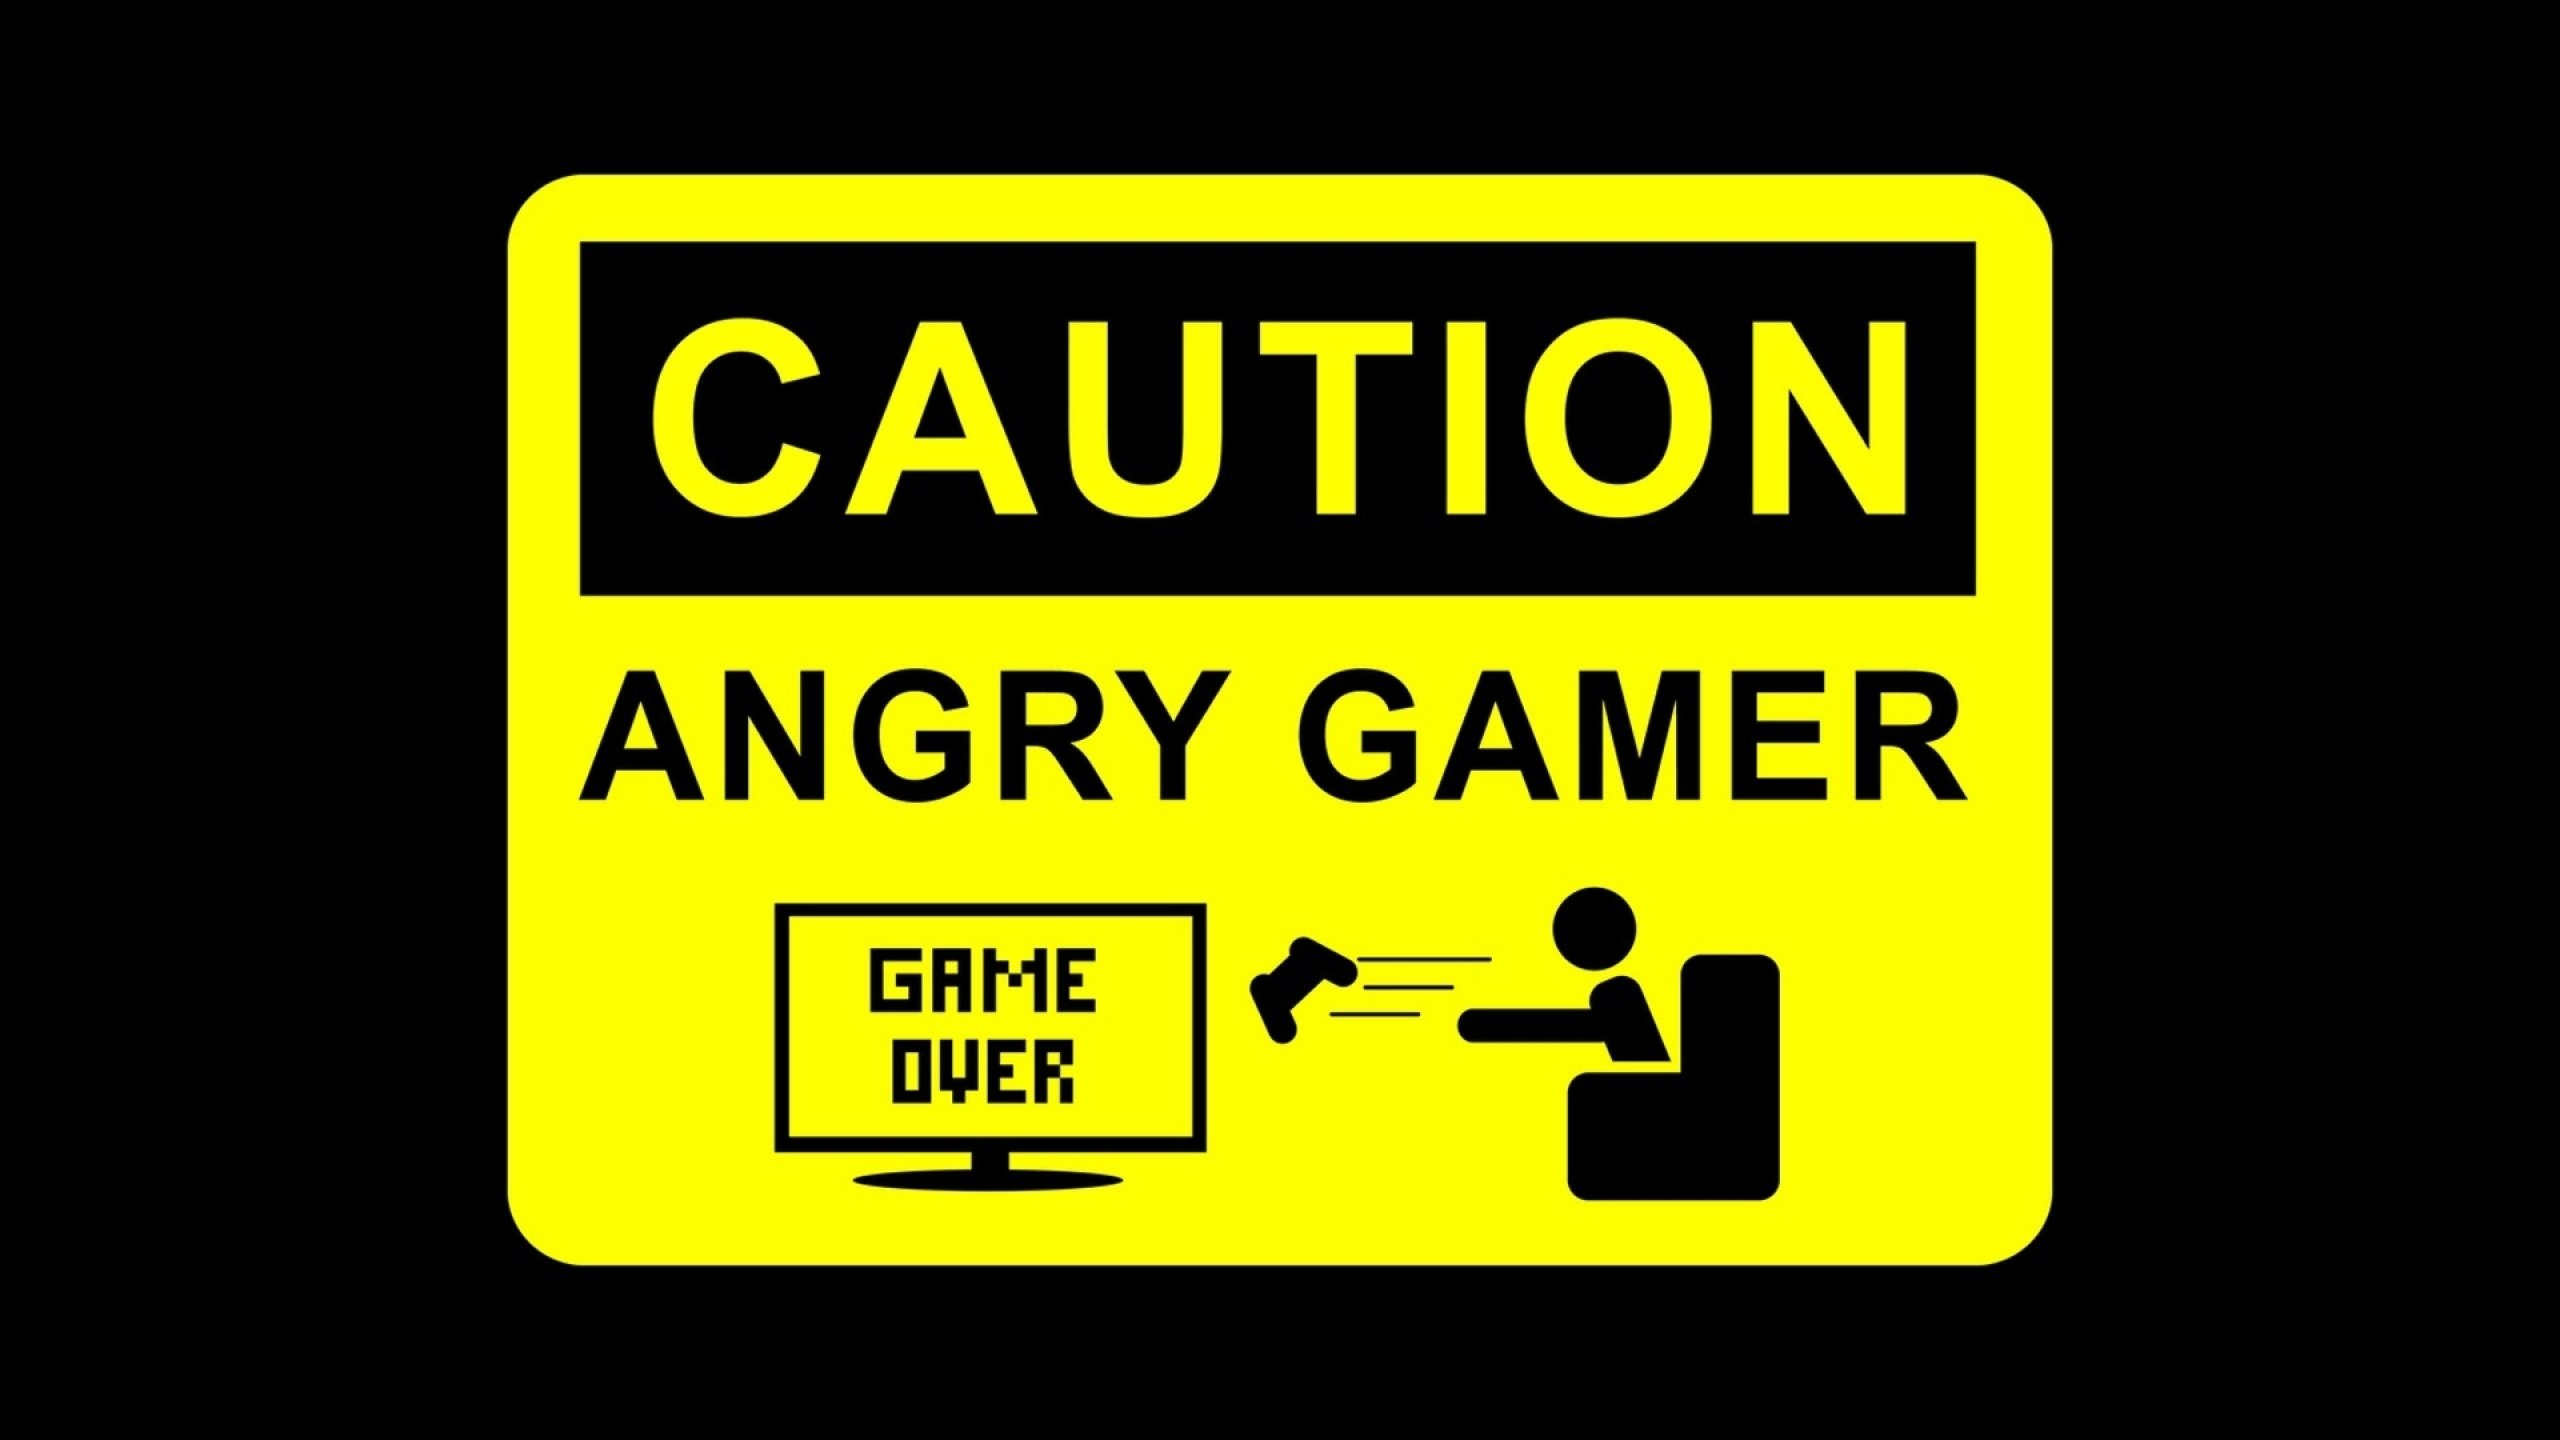 2560x1440 game over angry caution black background gamer 1920x1080 2560x1440